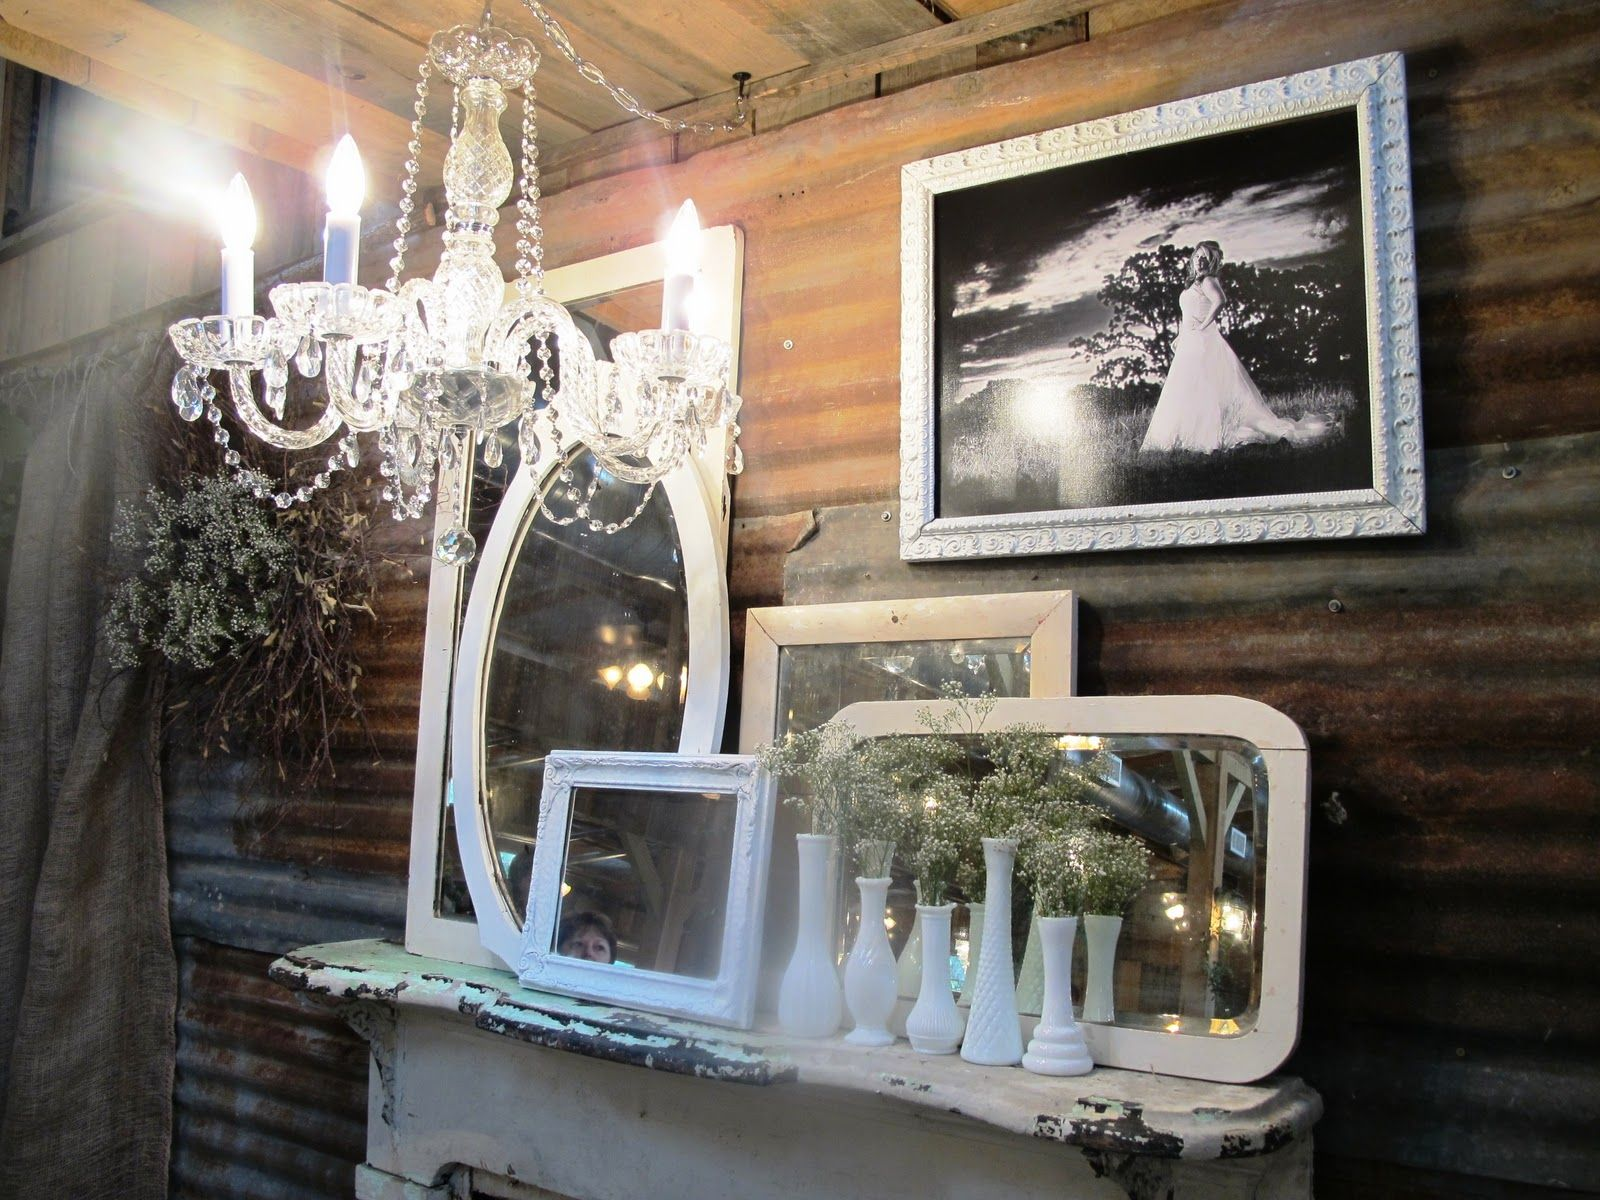 We enjoyed decorating this wedding, One Fine Day who specializes in Vintage Rentals and Wedding Decor.